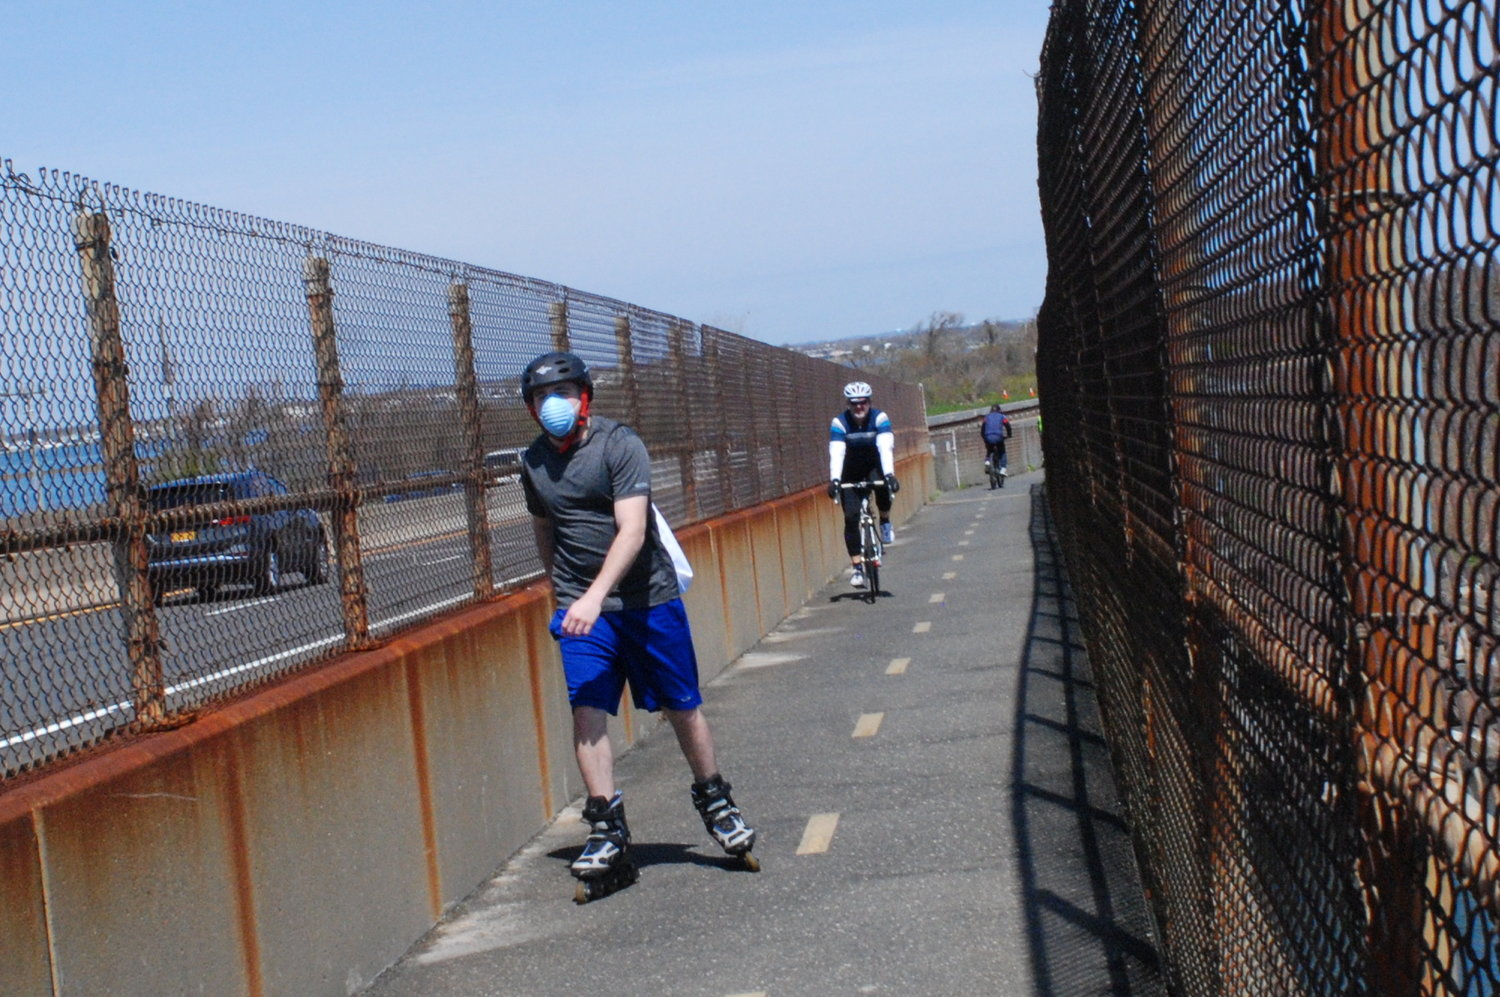 A number of cyclists and inline skaters wore masks as they made their way to and from Jones Beach.